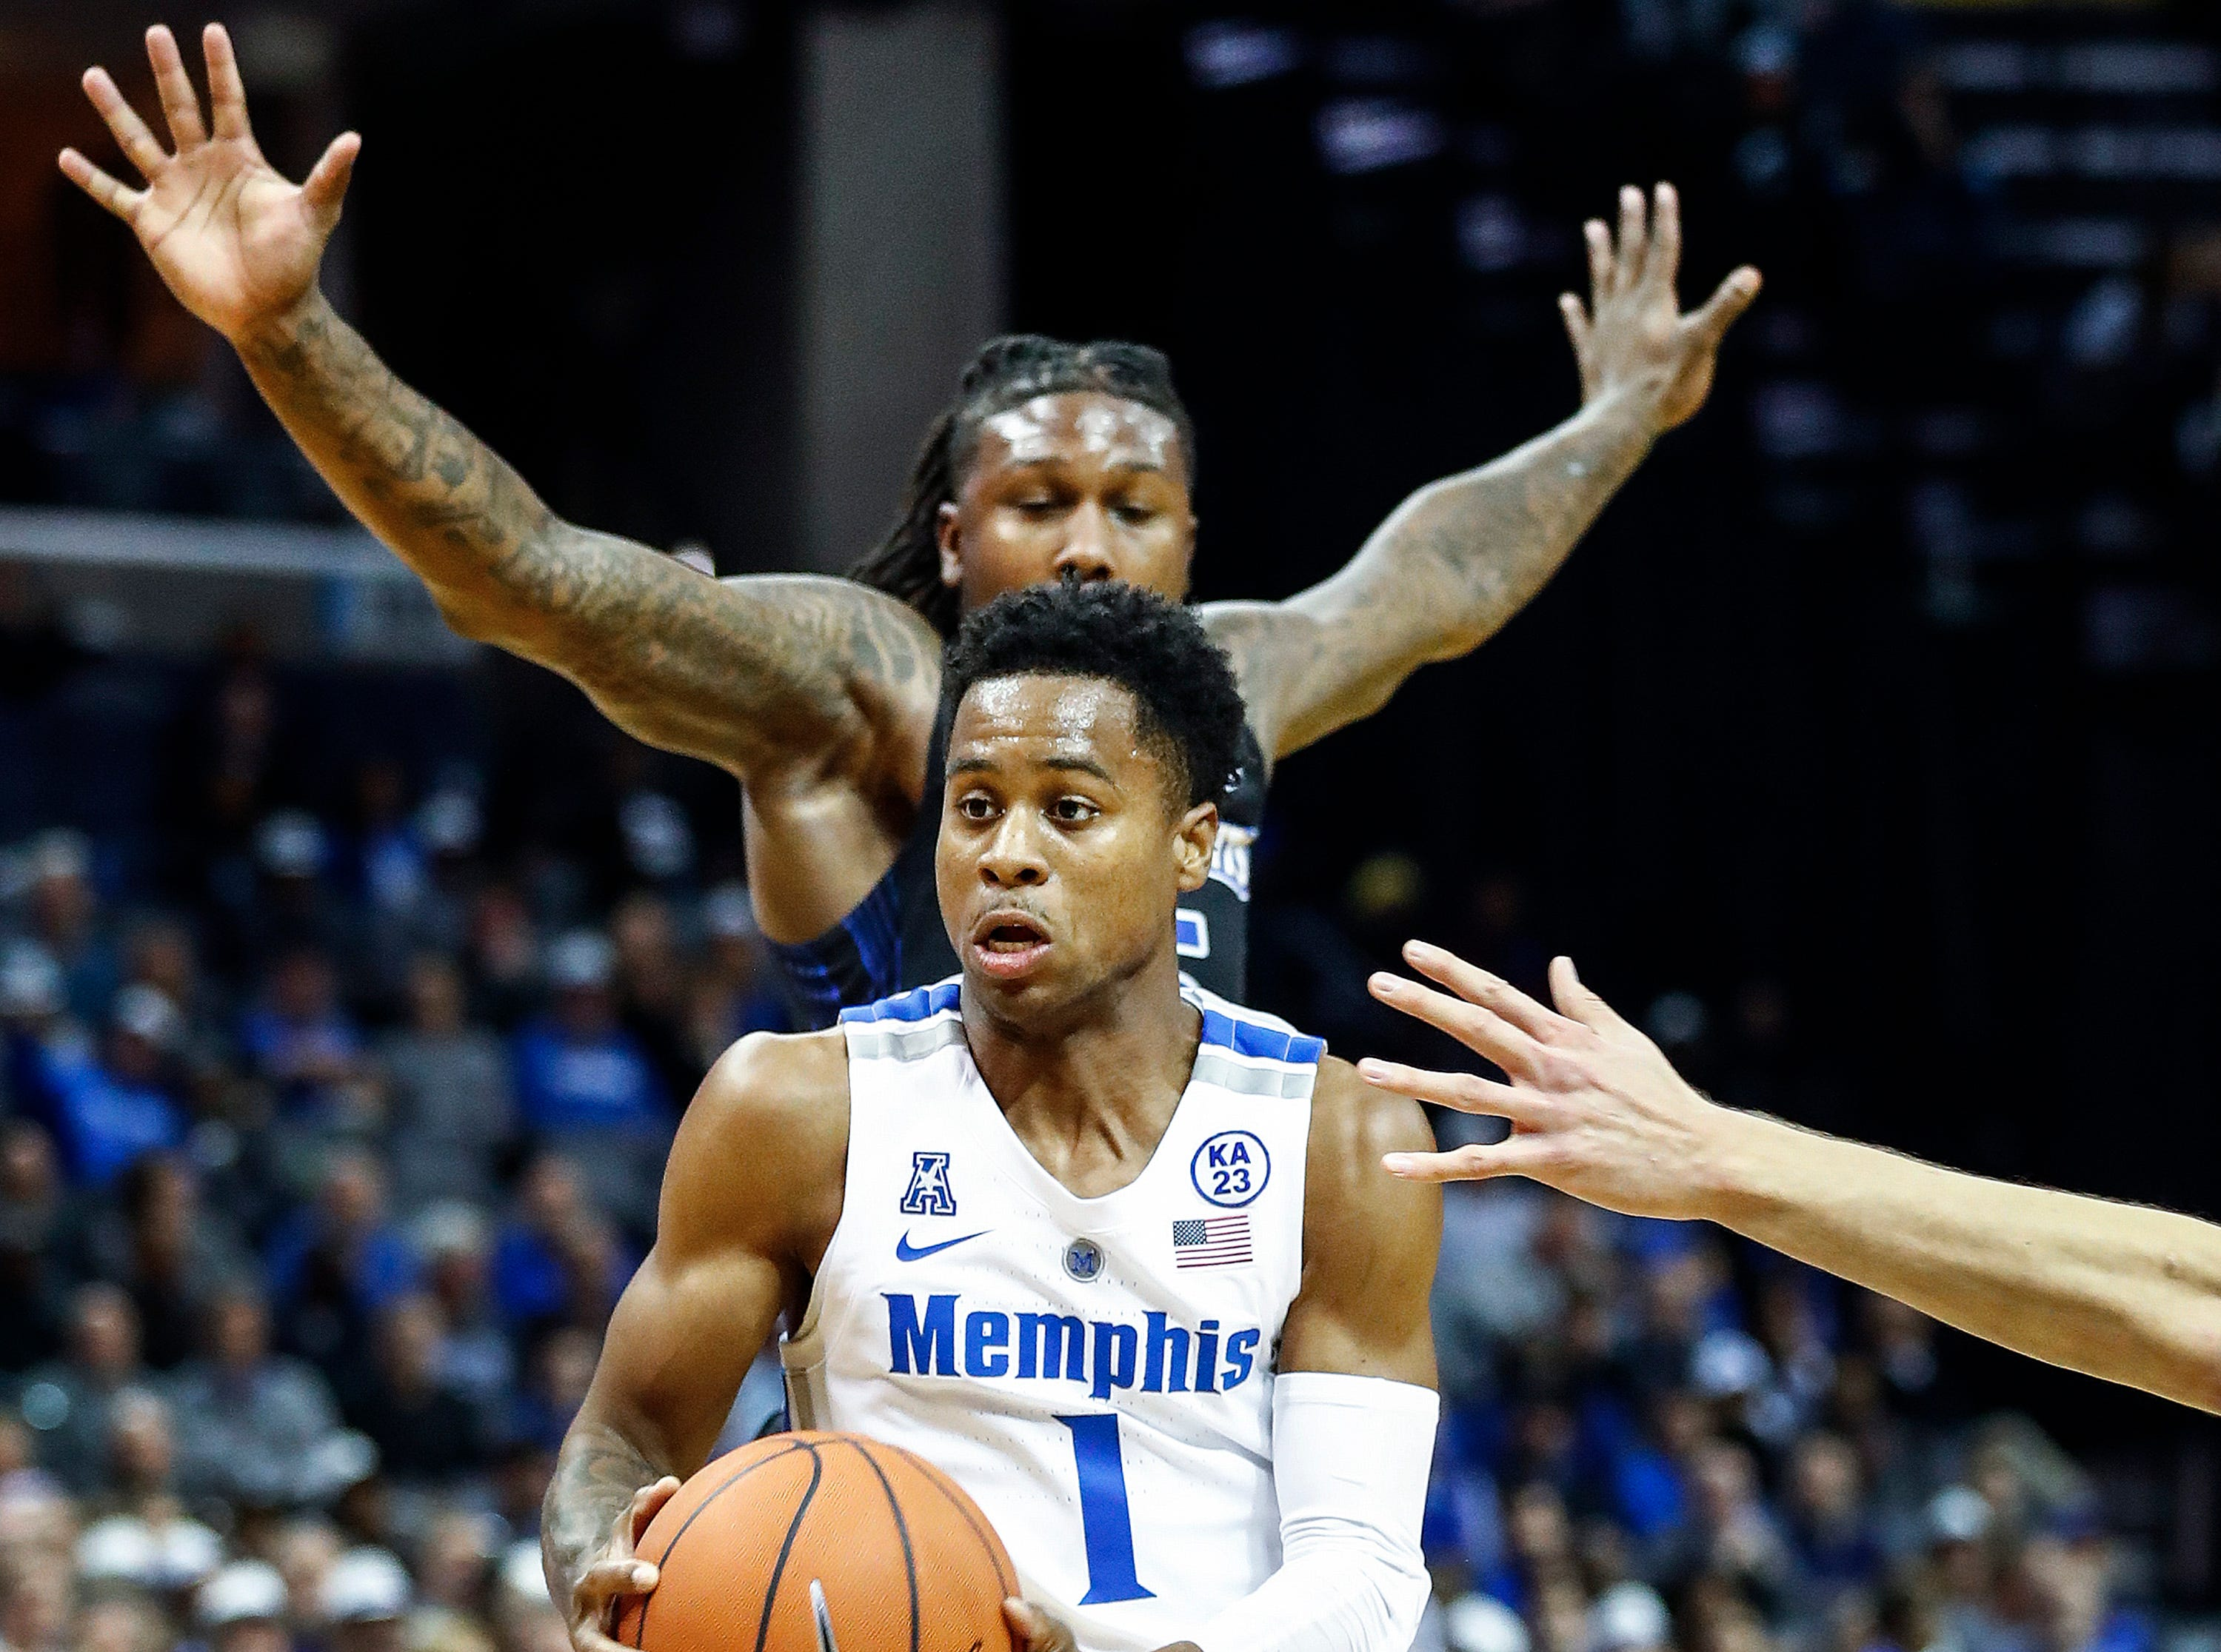 Memphis guard Tyler Harris drives the lane against the South Dakota State defense during action at the FedExFourm., Tuesday, December 4, 2018.